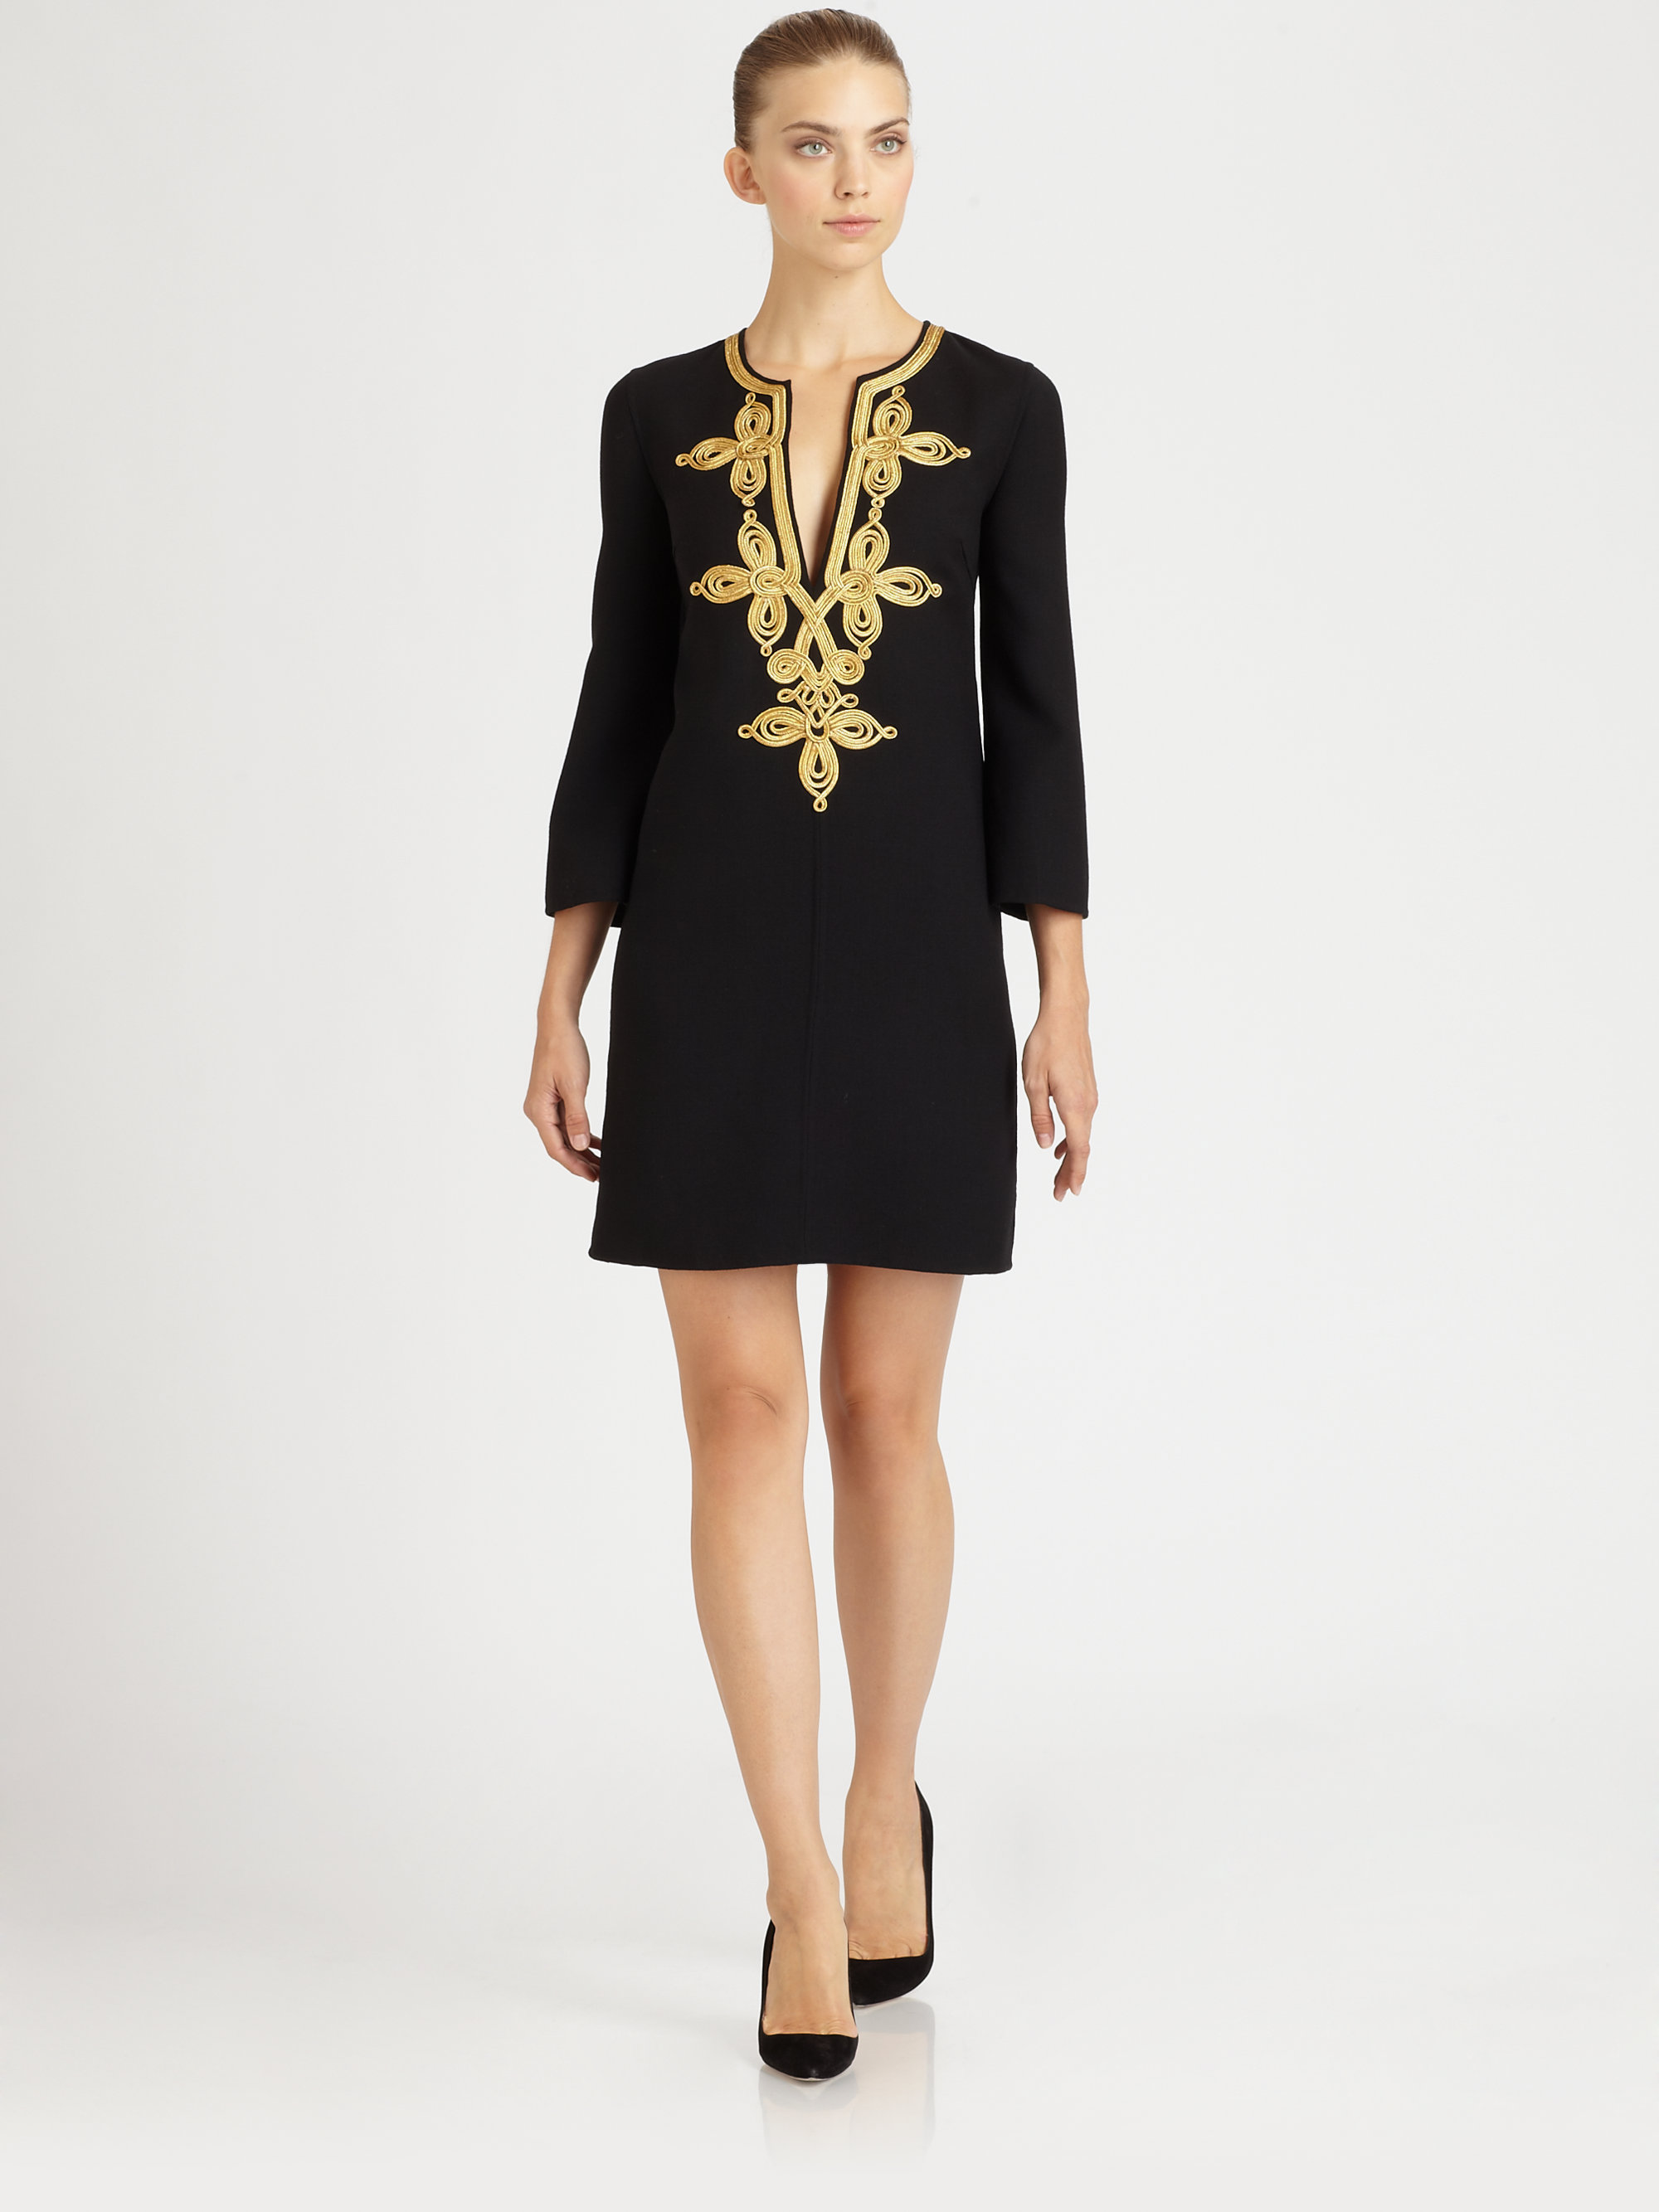 Michael Kors Embroidered Wool Dress In Black Lyst